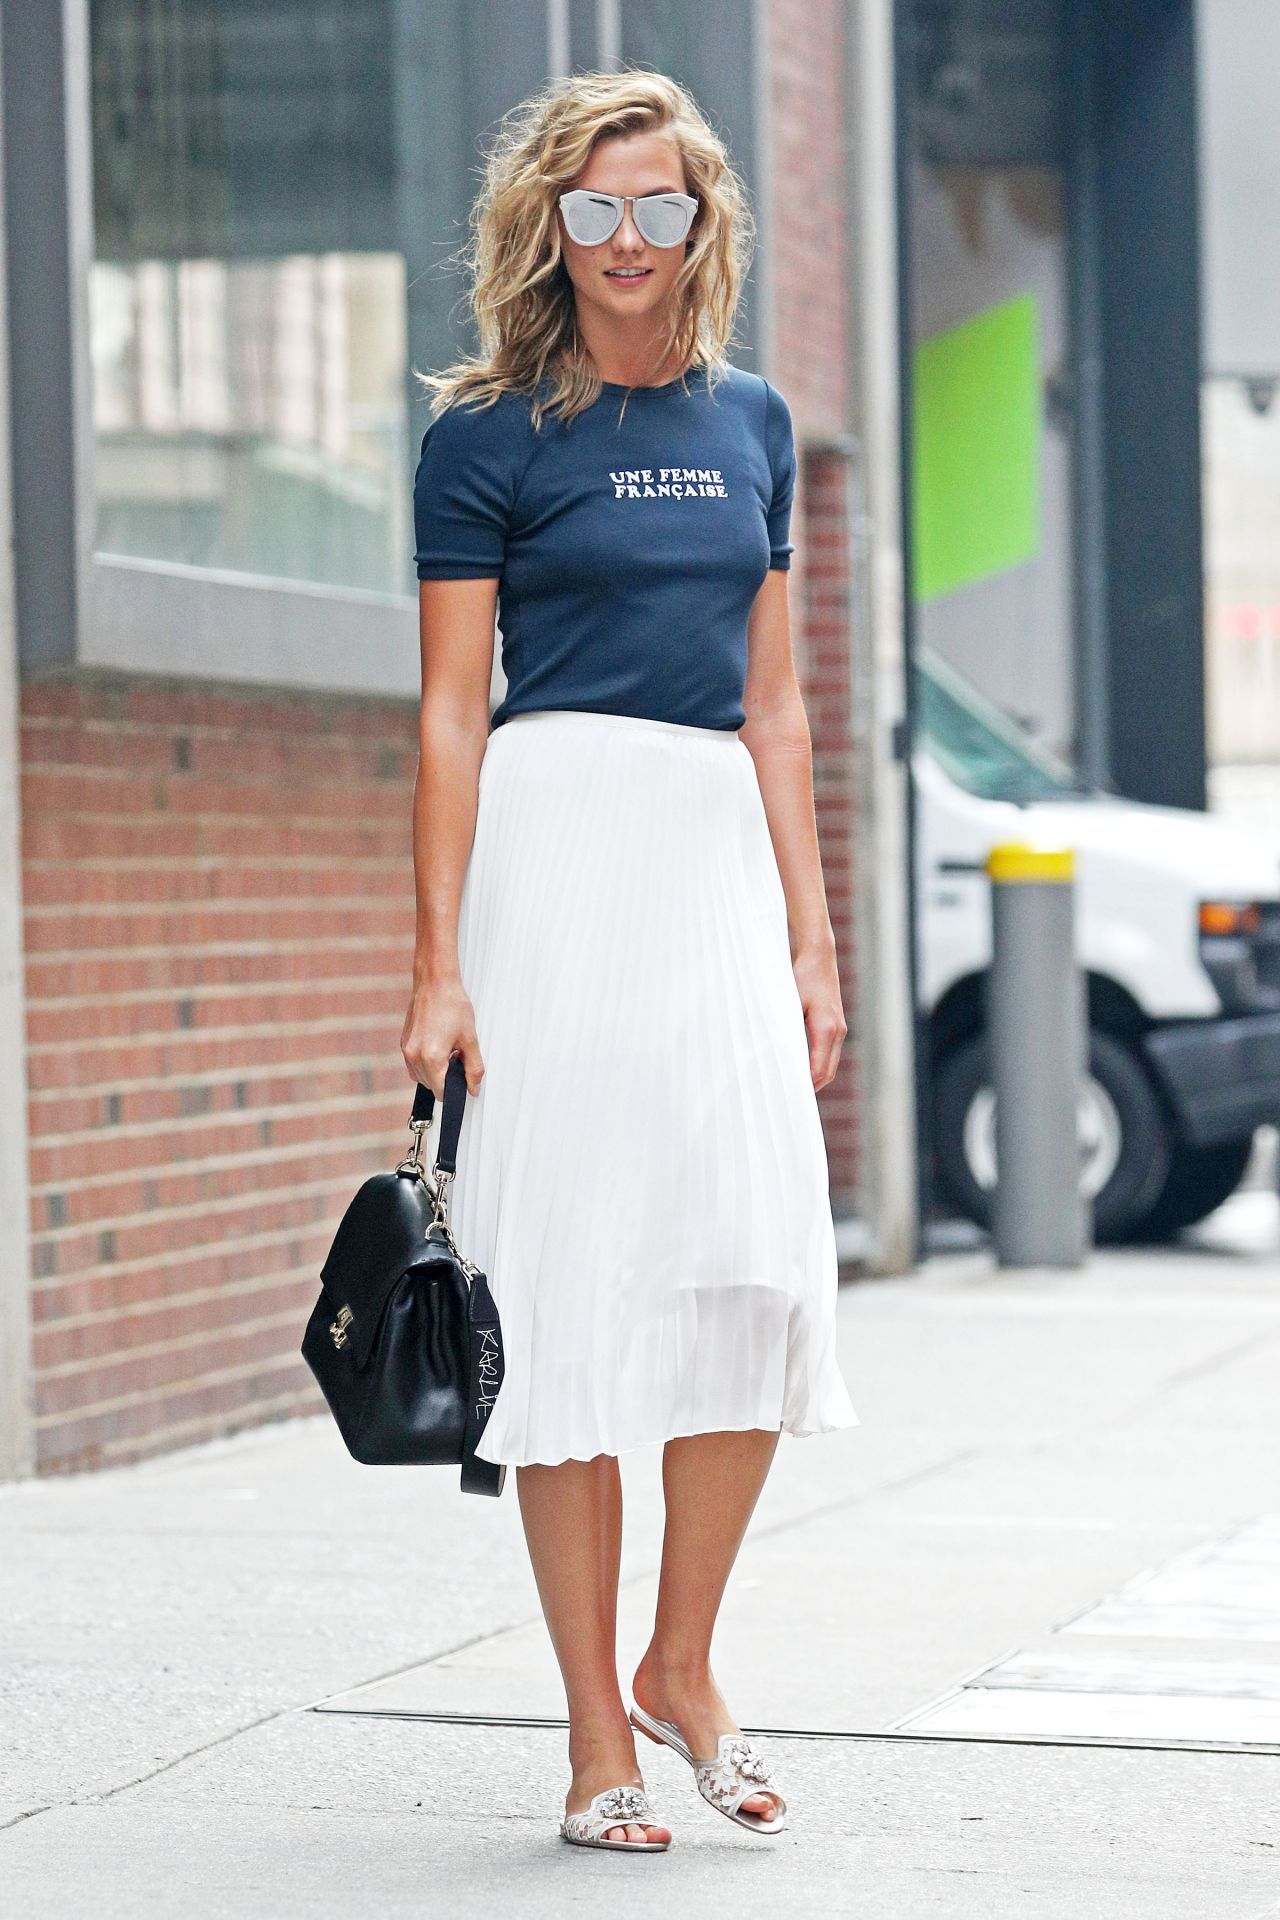 The new york vanity was named perfectly it has that city chic look - Karlie Kloss Casual Chic Outfit New York City